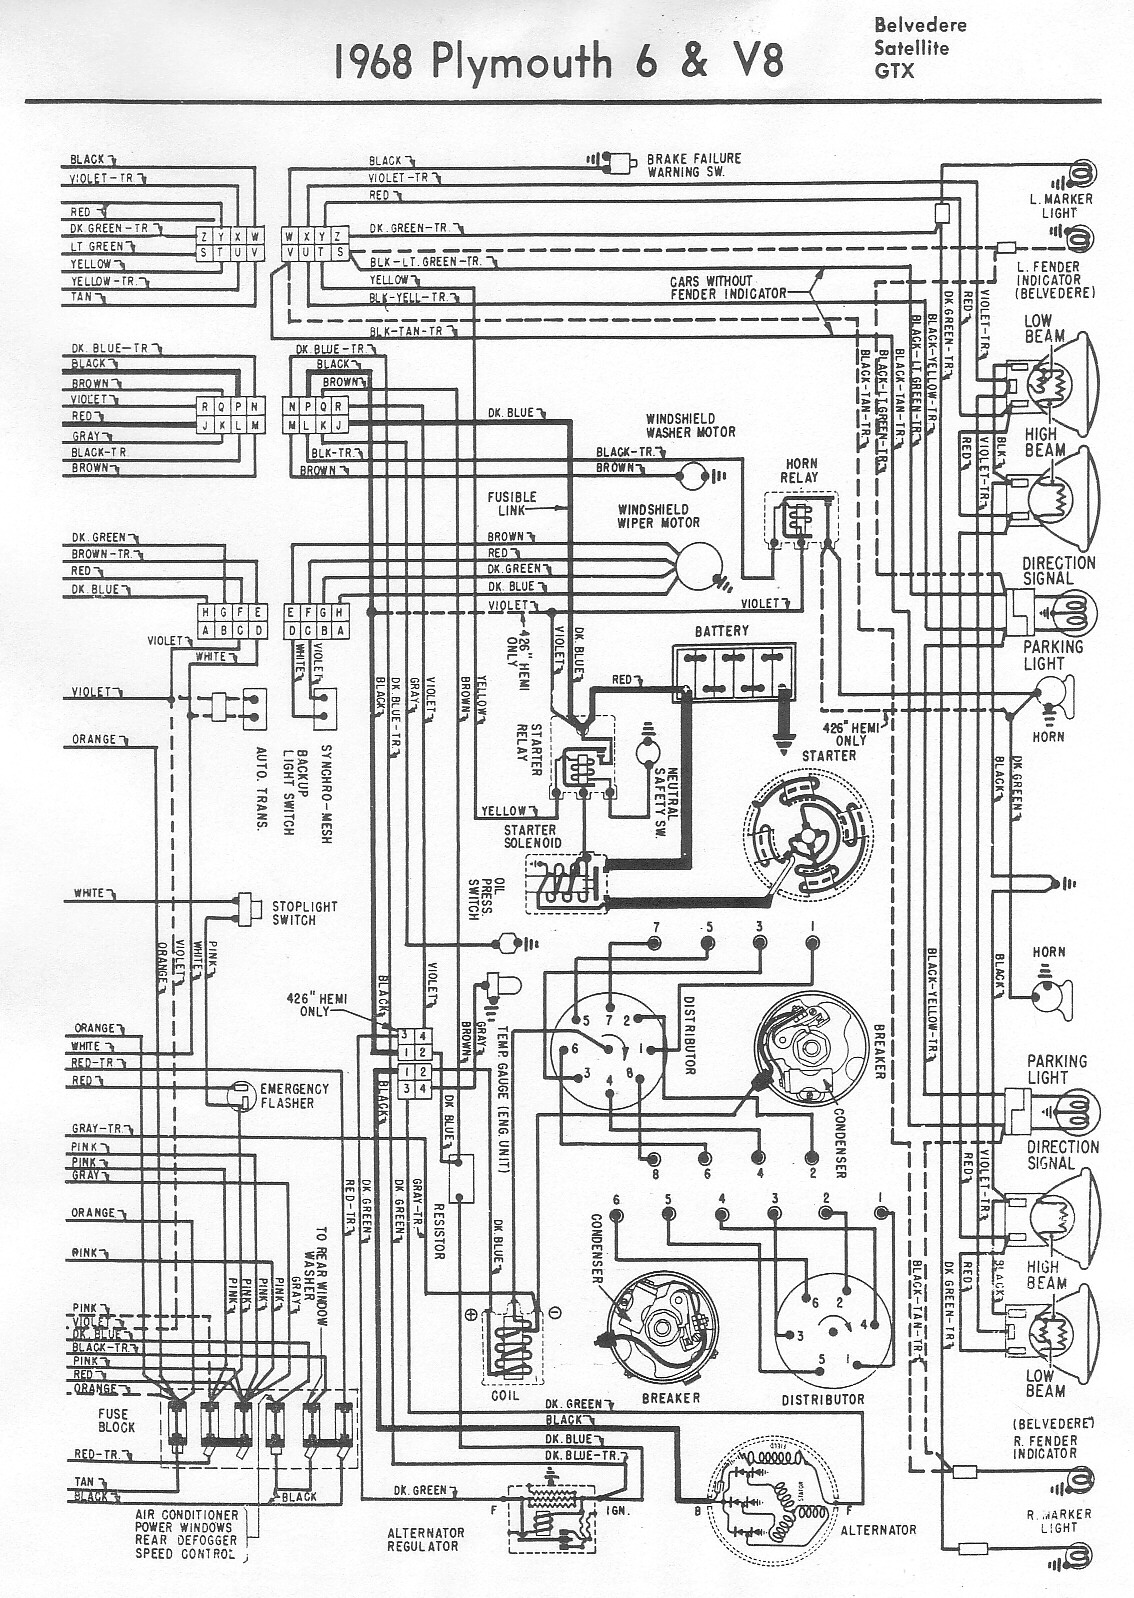 diagram] 1969 plymouth valiant radio wiring diagram full version hd quality wiring  diagram - lost-diagram.expertsuniversity.it  diagram database - expertsuniversity.it